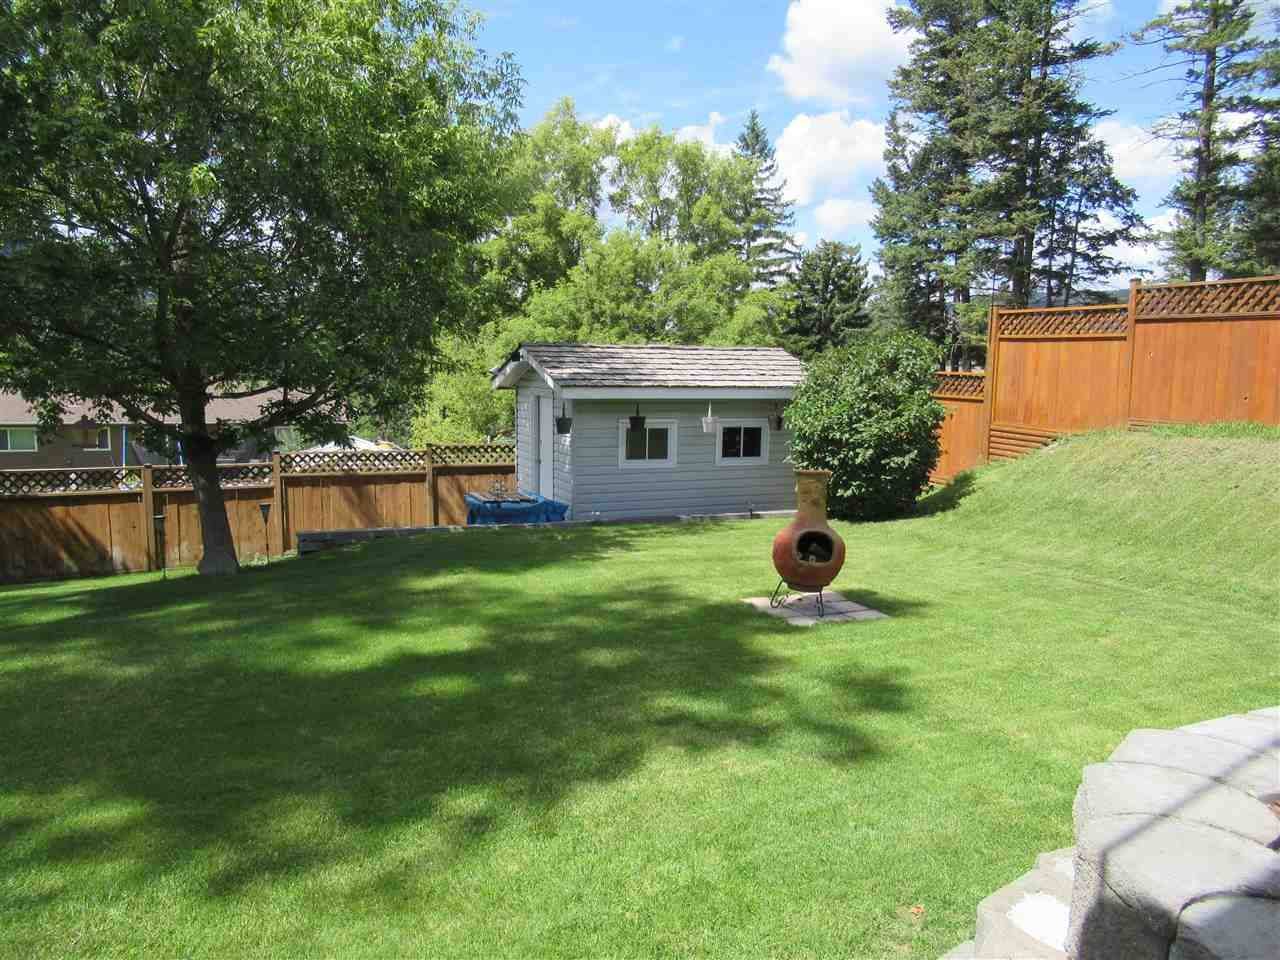 Photo 23: Photos: 763 MCDOUGALL Street in Williams Lake: Williams Lake - City House for sale (Williams Lake (Zone 27))  : MLS®# R2480620